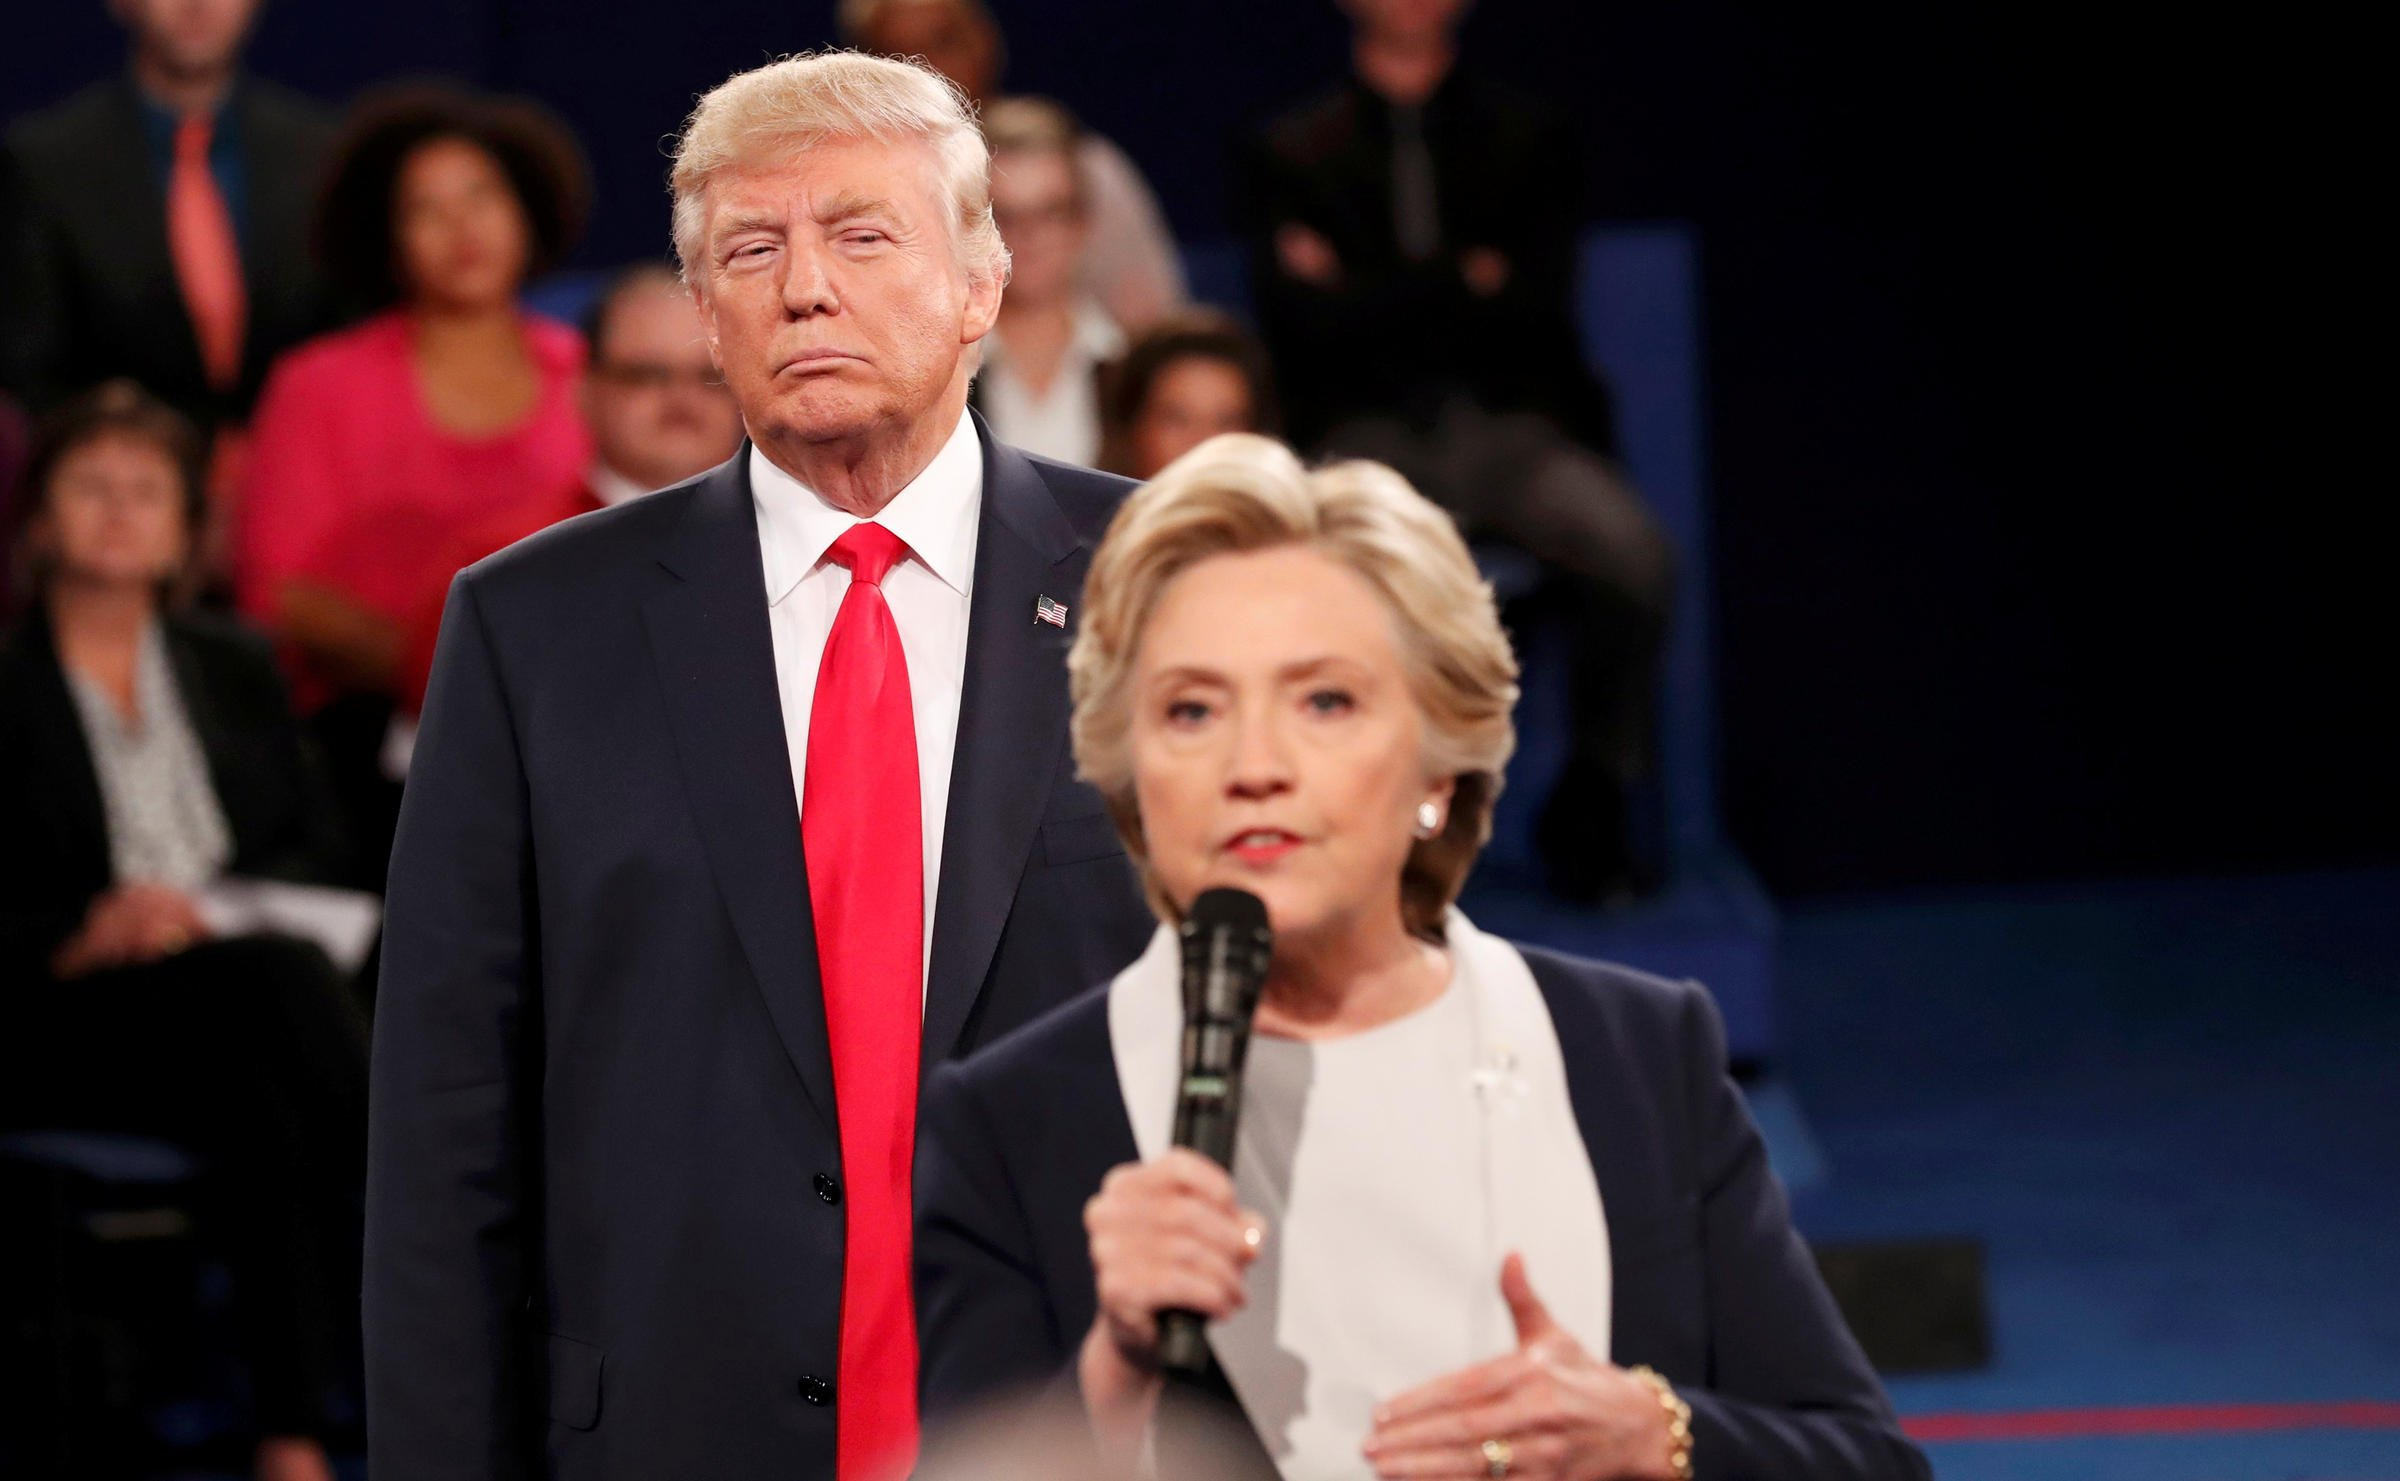 Donald Trump was the man Hillary Clinton needed to win the women's vote   WUNC